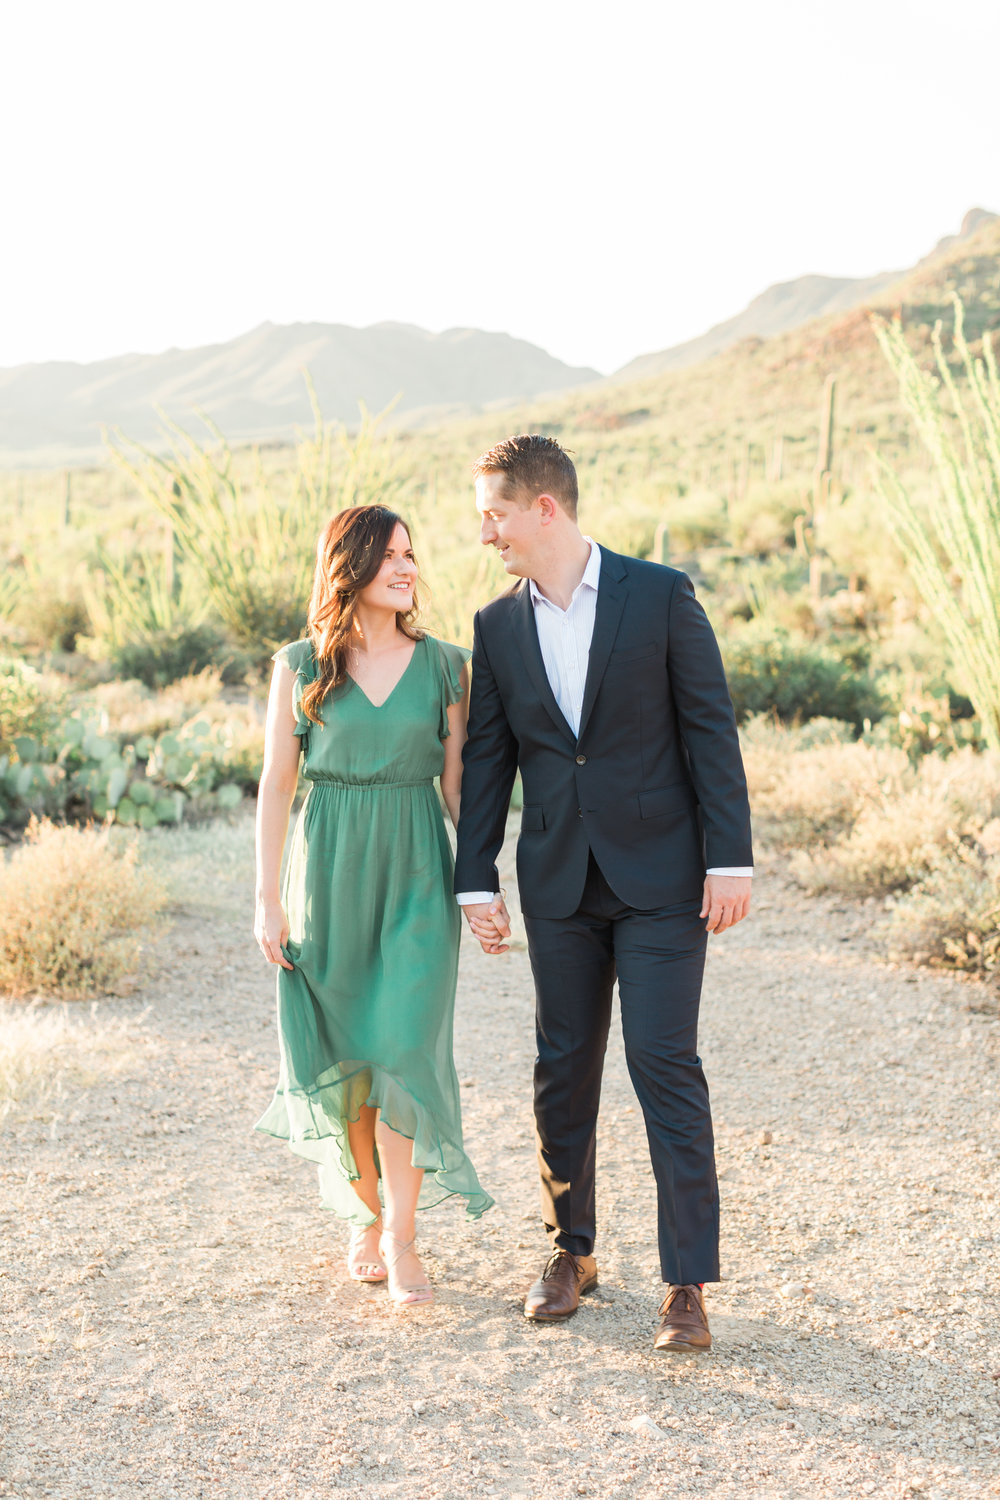 Cute couple walking in the desert. Love all that glowing cactus and gorgeous Tucson mountains in the background!